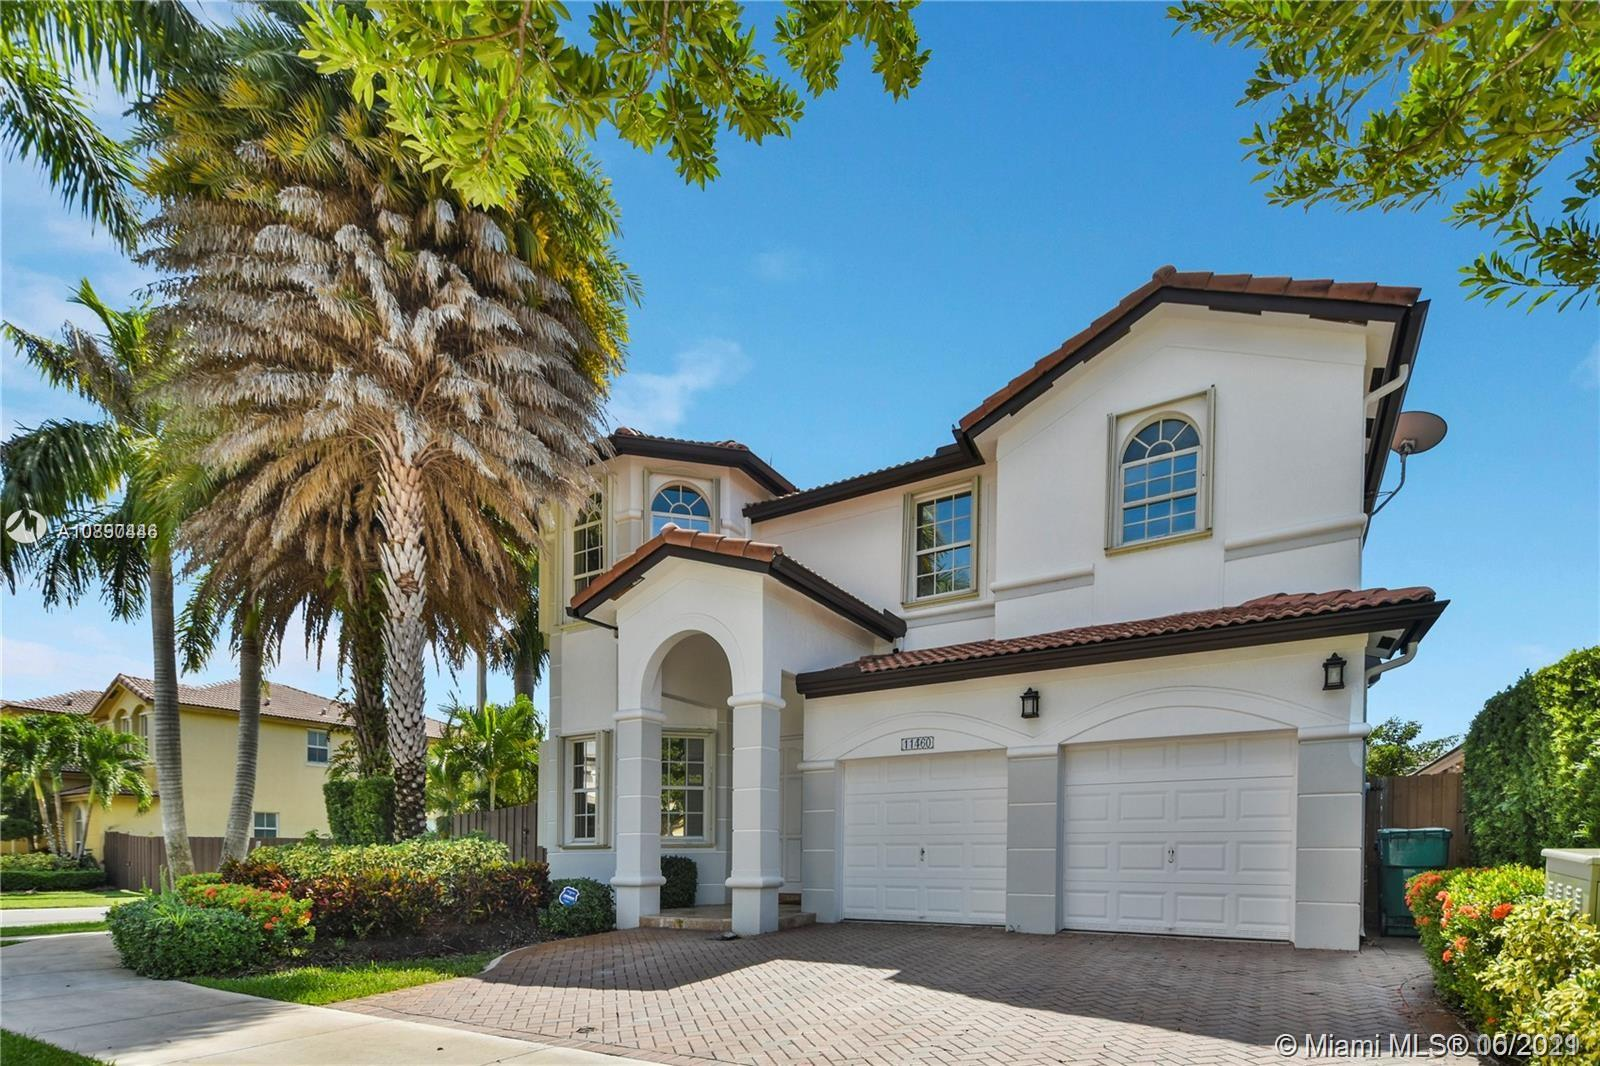 This amazing house has everything that a demanding buyer would like to have. Corner Lot in quiet street behind the Legacy Park, 5 Large Bedrooms, and 4.5 Bathrooms.Gorgeous Outdoor Entertainment Area with Beautiful, modern heated Pool, Pergola. Built-in Gas Grill in granite furniture and central Aisle. Beautiful kitchen with Thermador appliances, wine cooler. Marble flooring throughout, Renovated and modern bathrooms with marble vanities. A modern staircase leads to Upstairs. Family room with large Entertainment center, Accordion Shutters throughout all windows except on one. Impact sliding doors, charming curtains, Large Washer and Dryer. Garage with tiled floor, Water treatment system, Many Upgrades, elegant fans, and spectacular lamps.Your client will love it. Very easy to show.